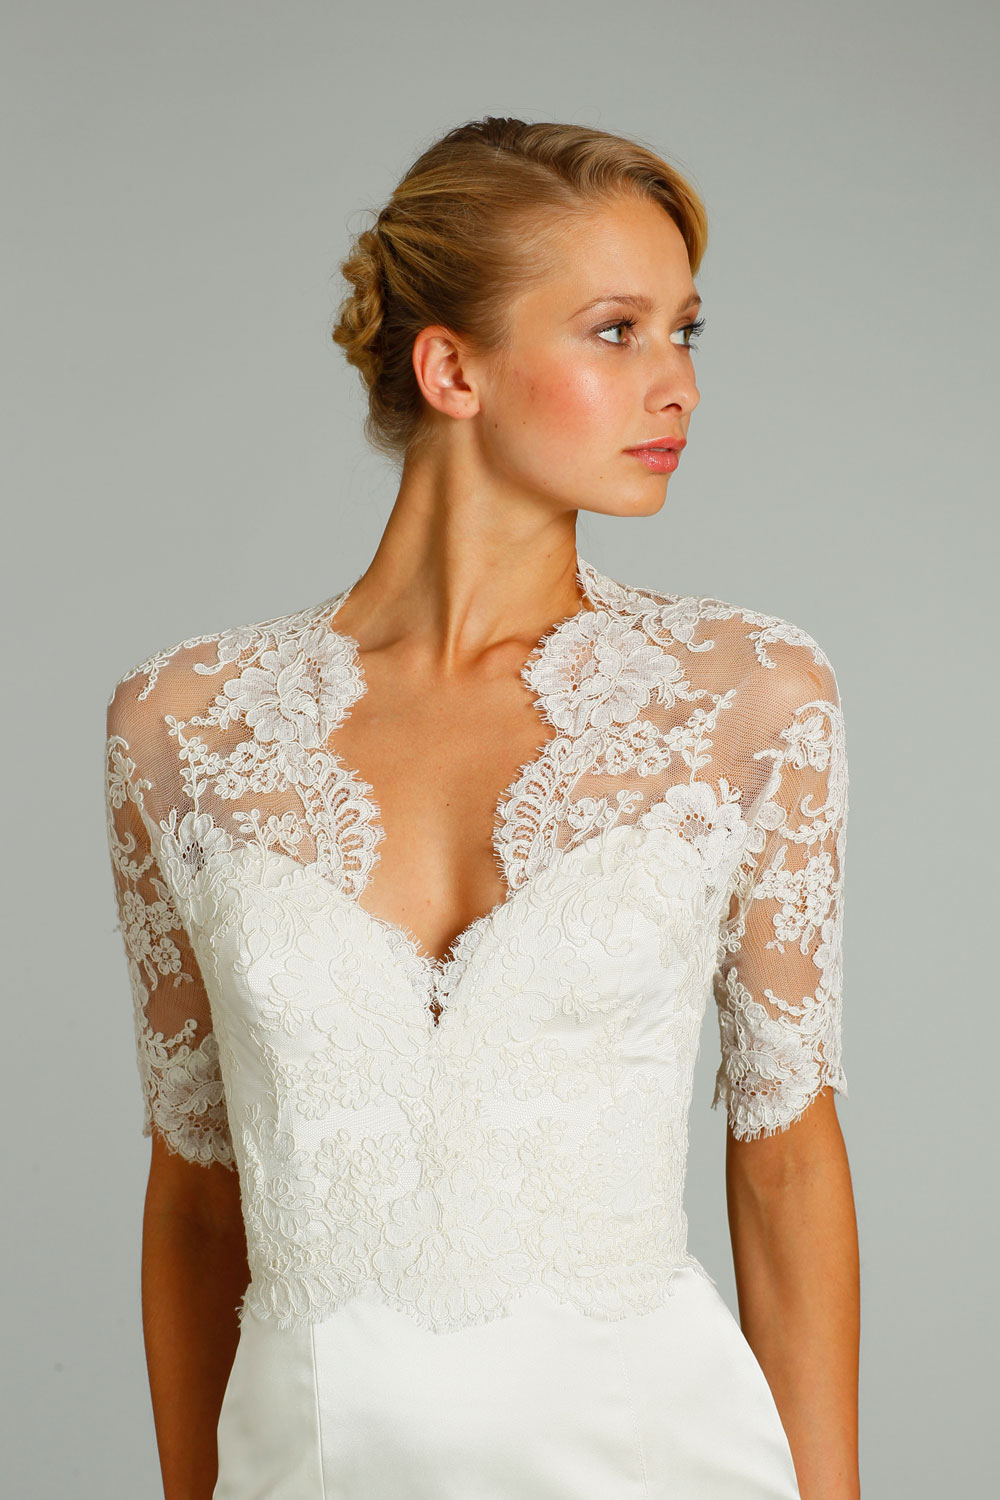 Fall-2012-wedding-dress-jim-hjelm-bridal-gowns-8256-detail.original